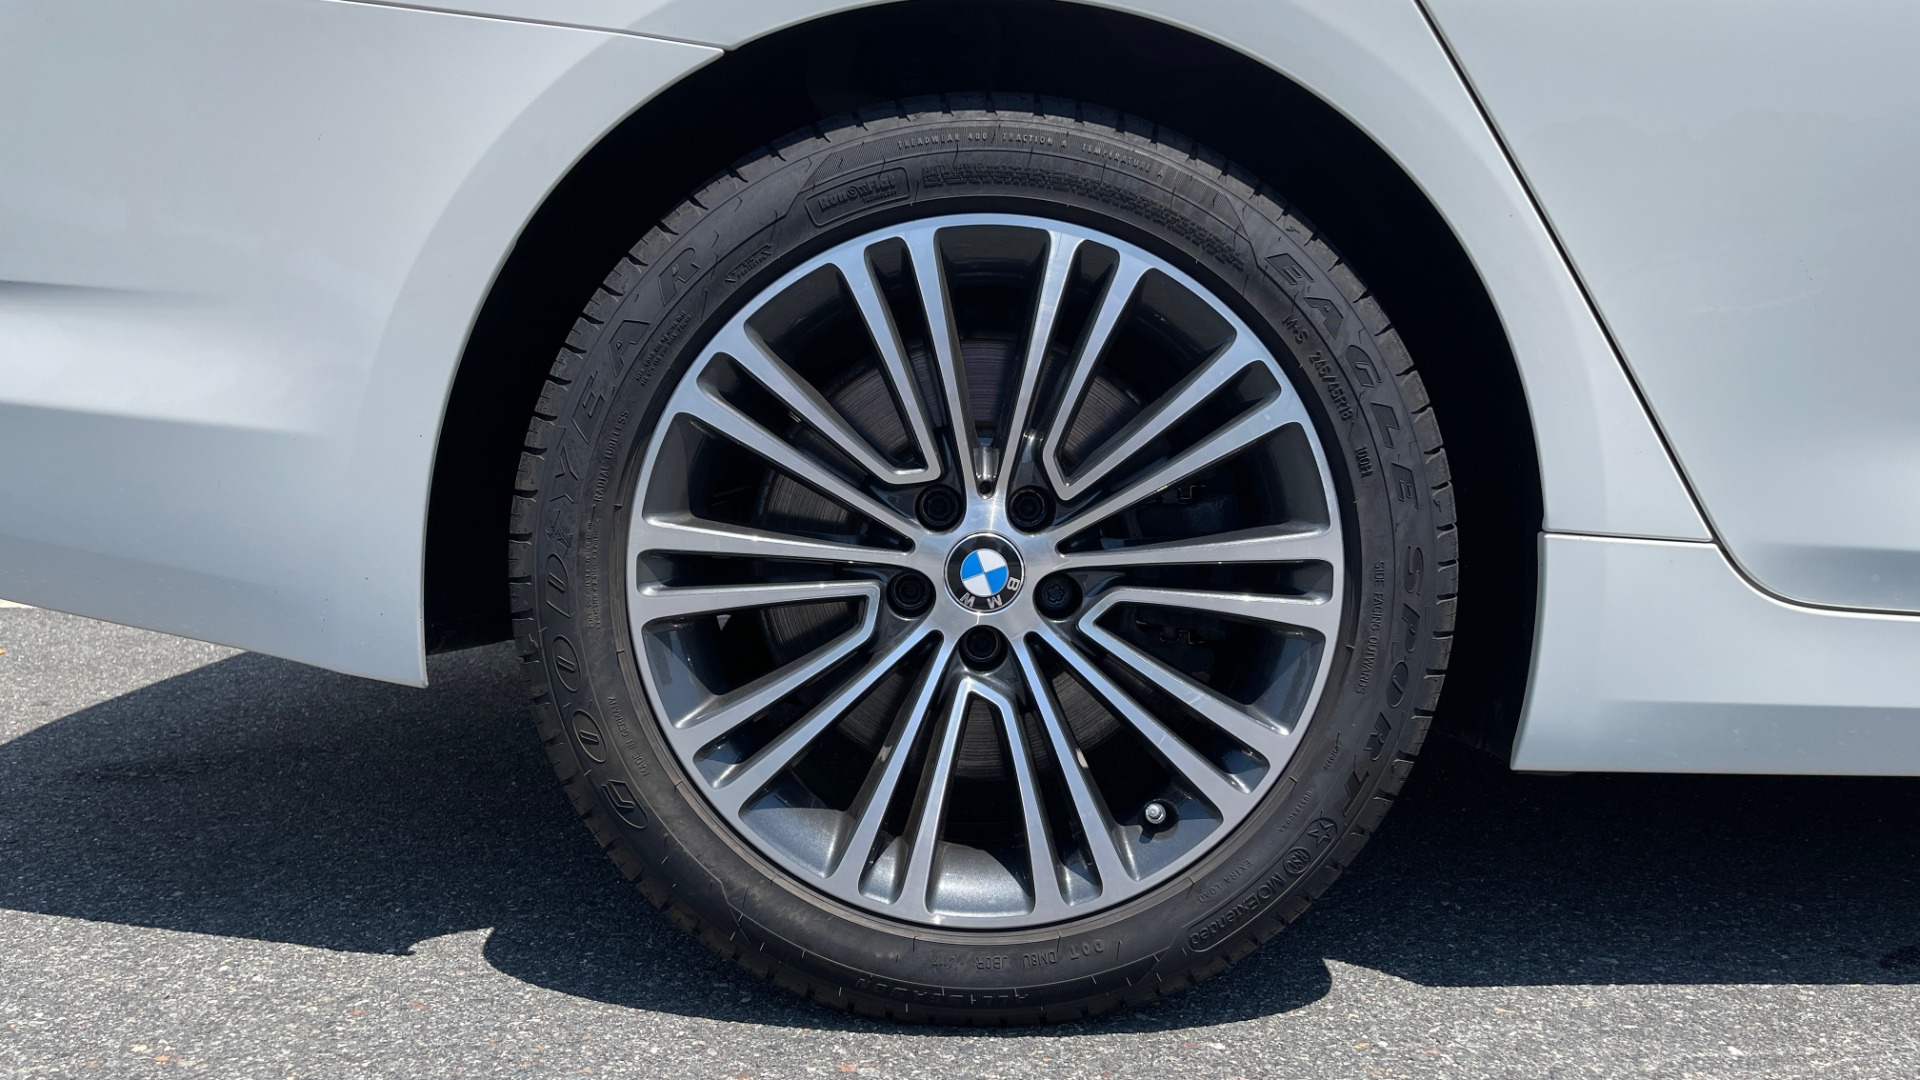 Used 2018 BMW 5 SERIES 540IXDRIVE PREMIUM / PARK ASSIST / KEYLESS ENTRY / SUNROOF / REARVIEW for sale $42,995 at Formula Imports in Charlotte NC 28227 74